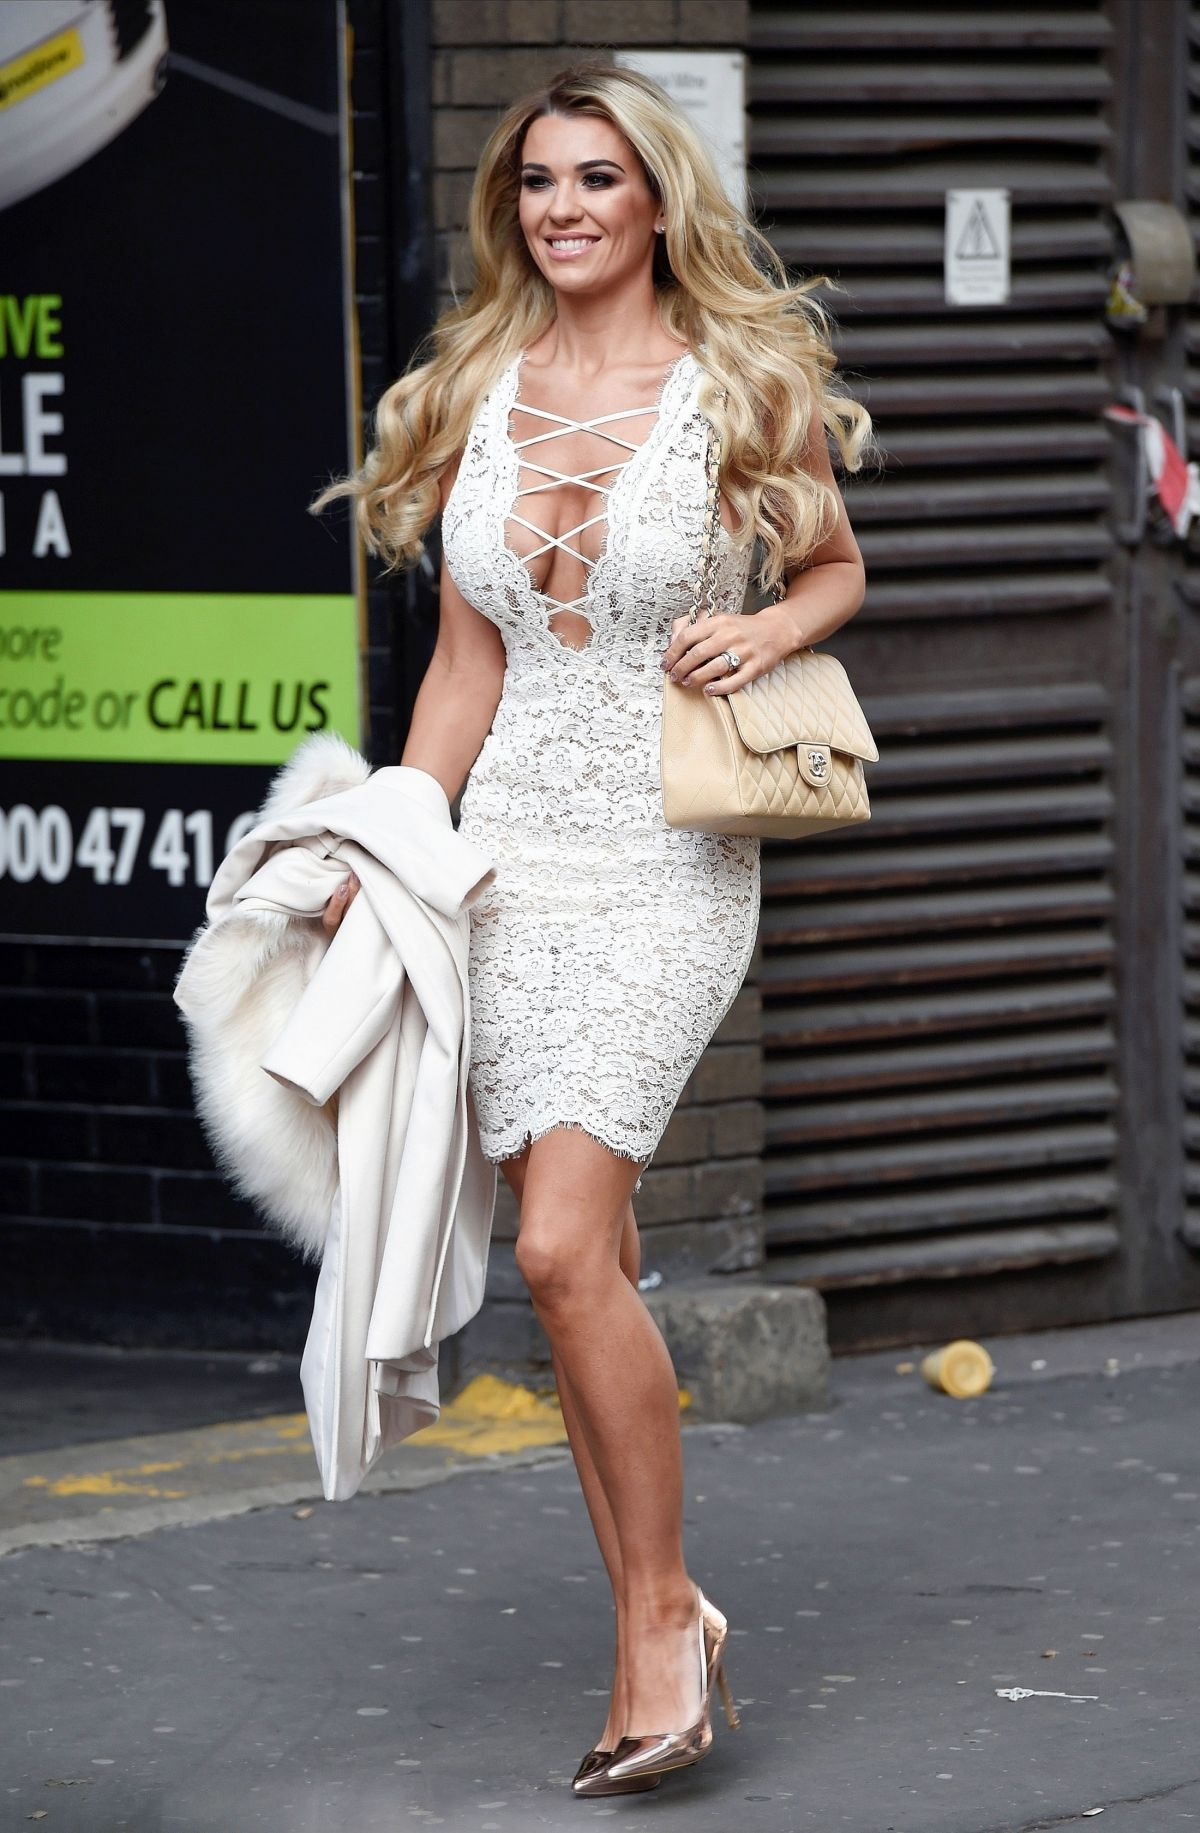 Christine Mcguinness Out And About In Manchester 03 07